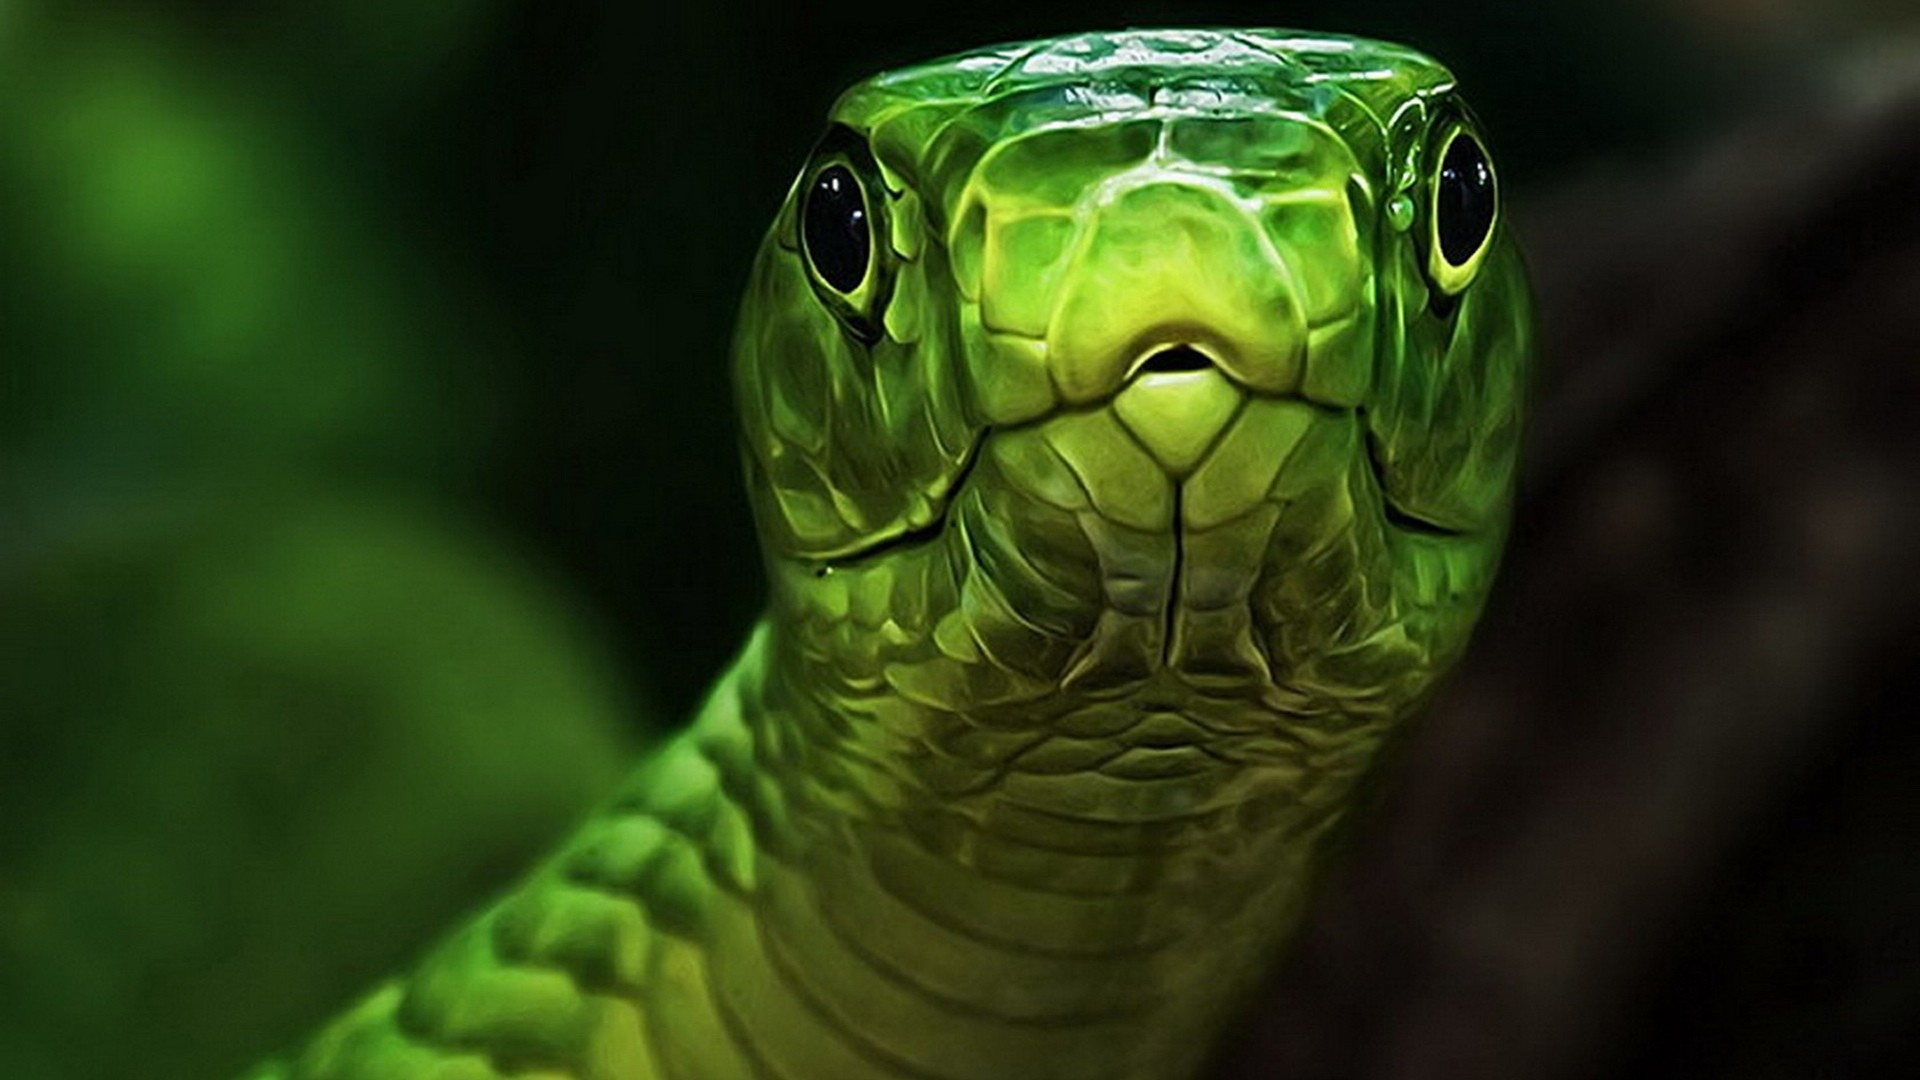 """What you lookin at"" Green Snake Wallpaper HD"